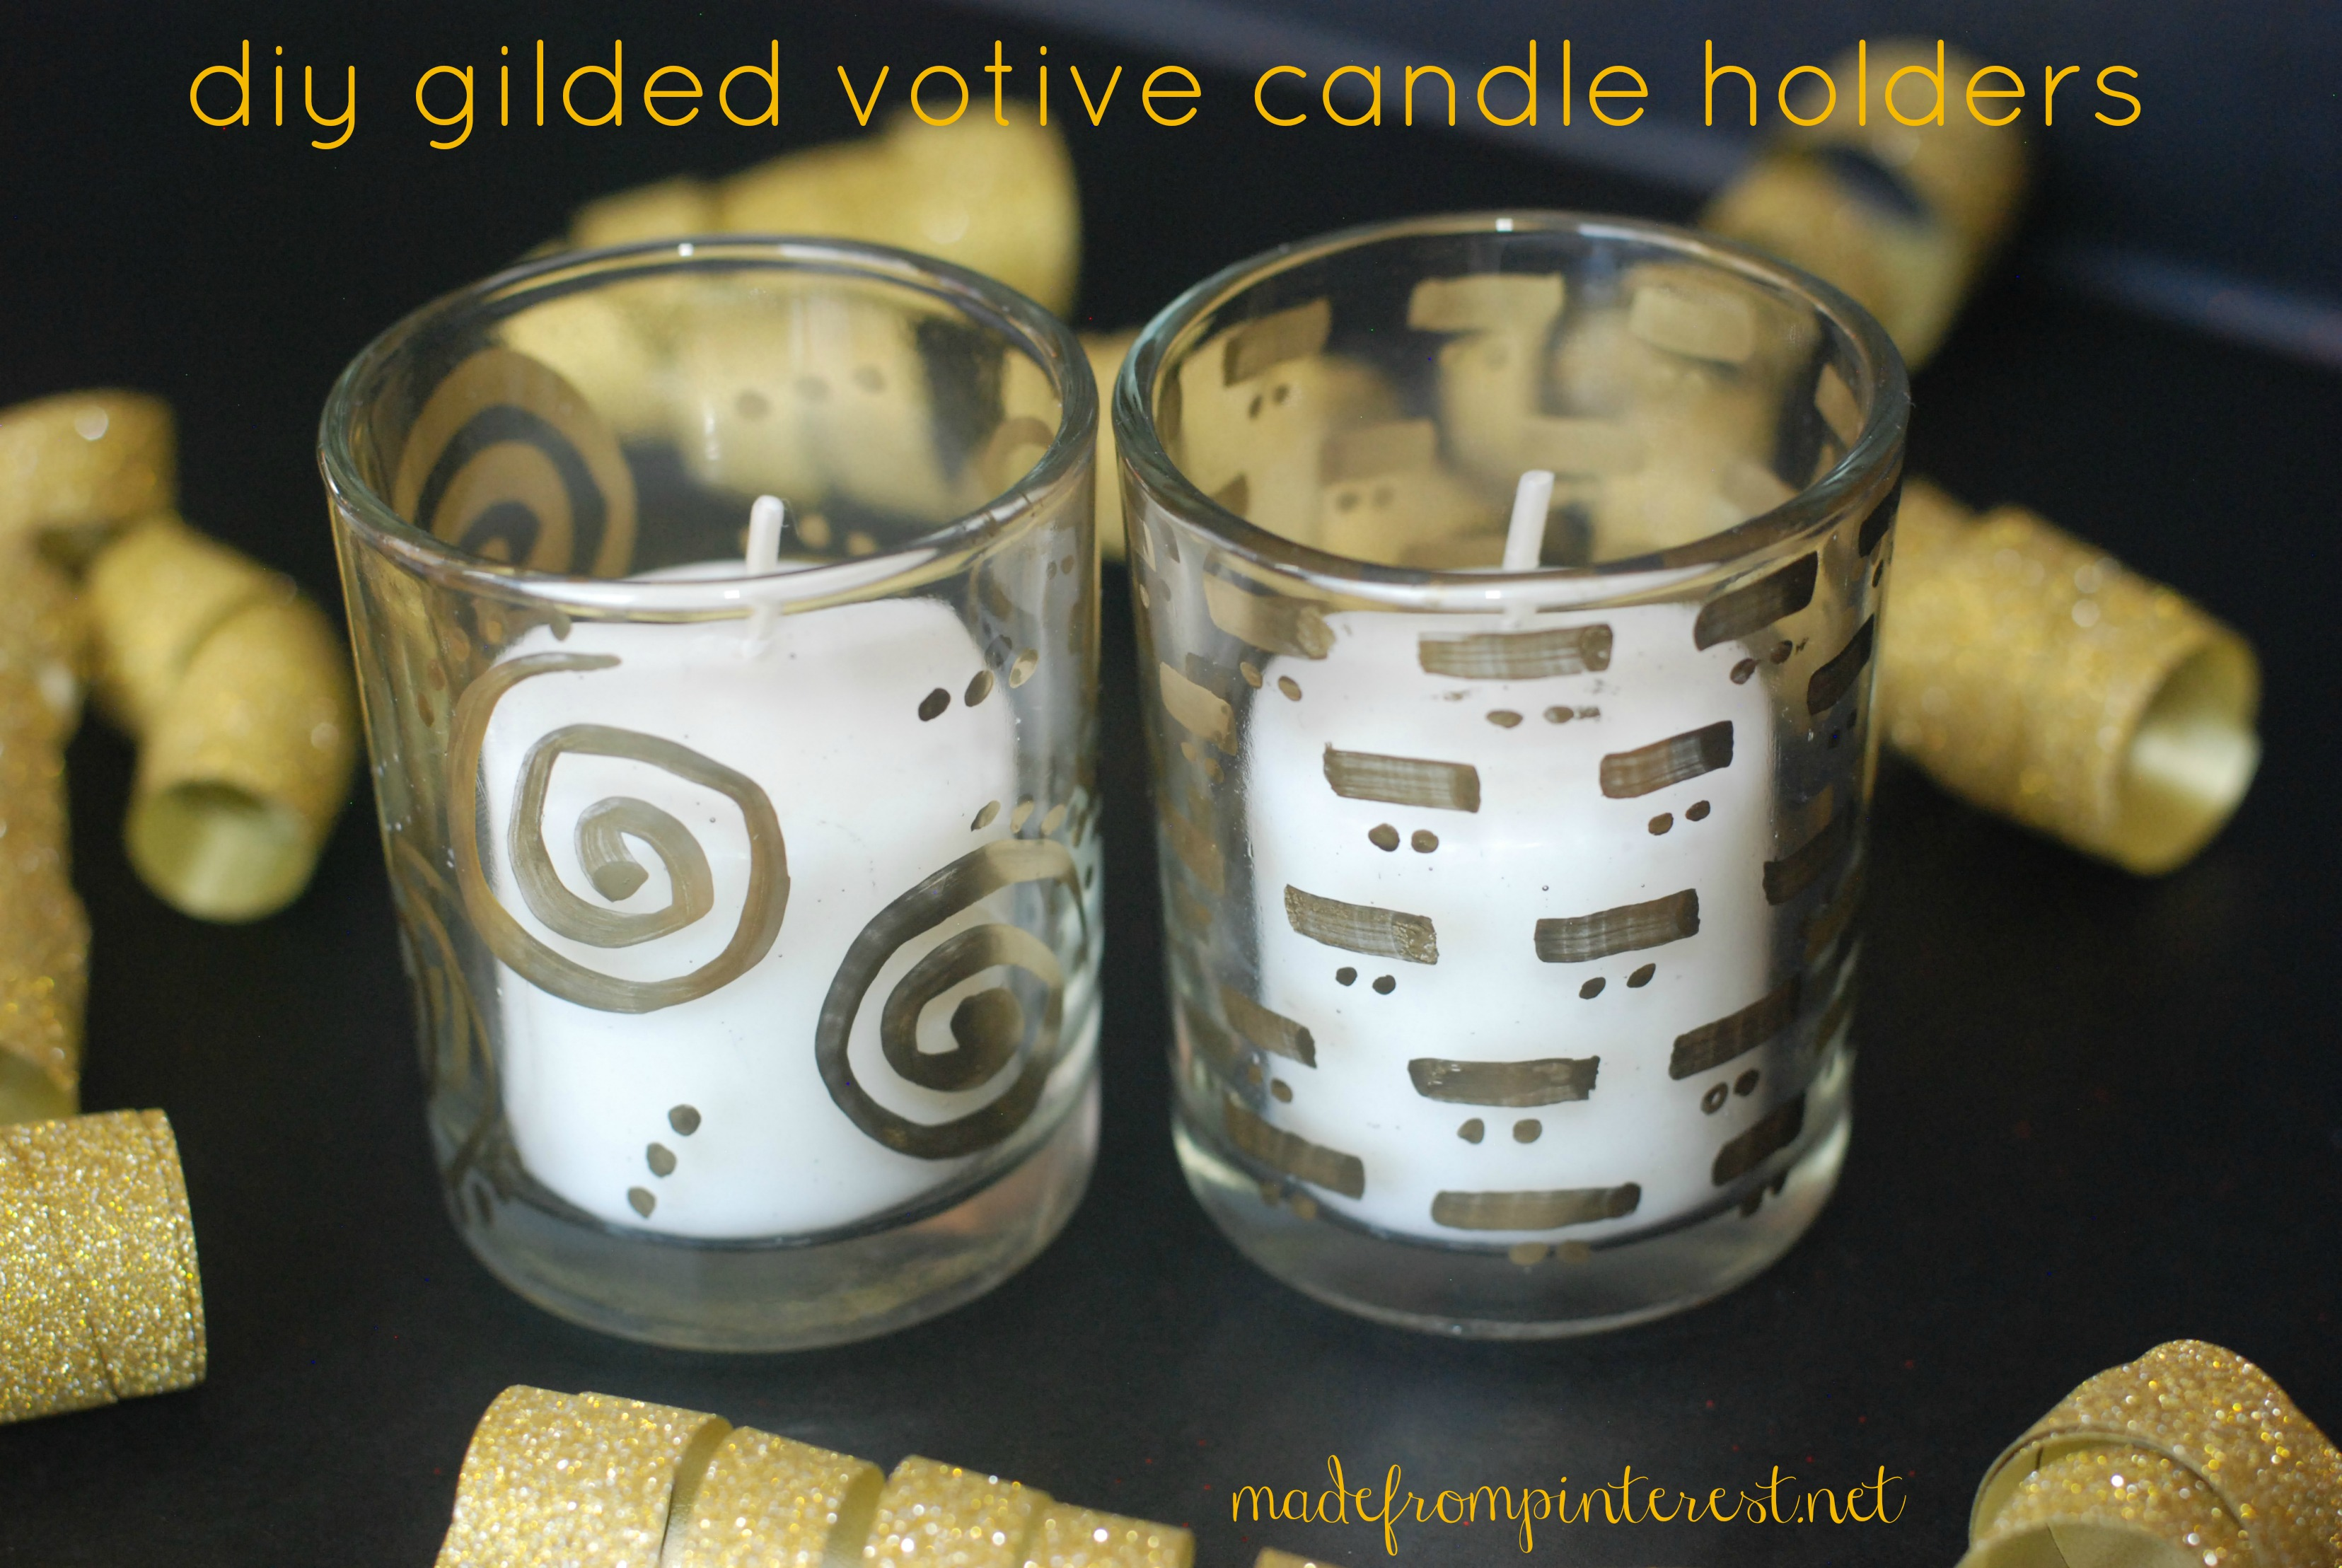 Diy gilded votive candle holder tutorial tgif this for Homemade votive candles